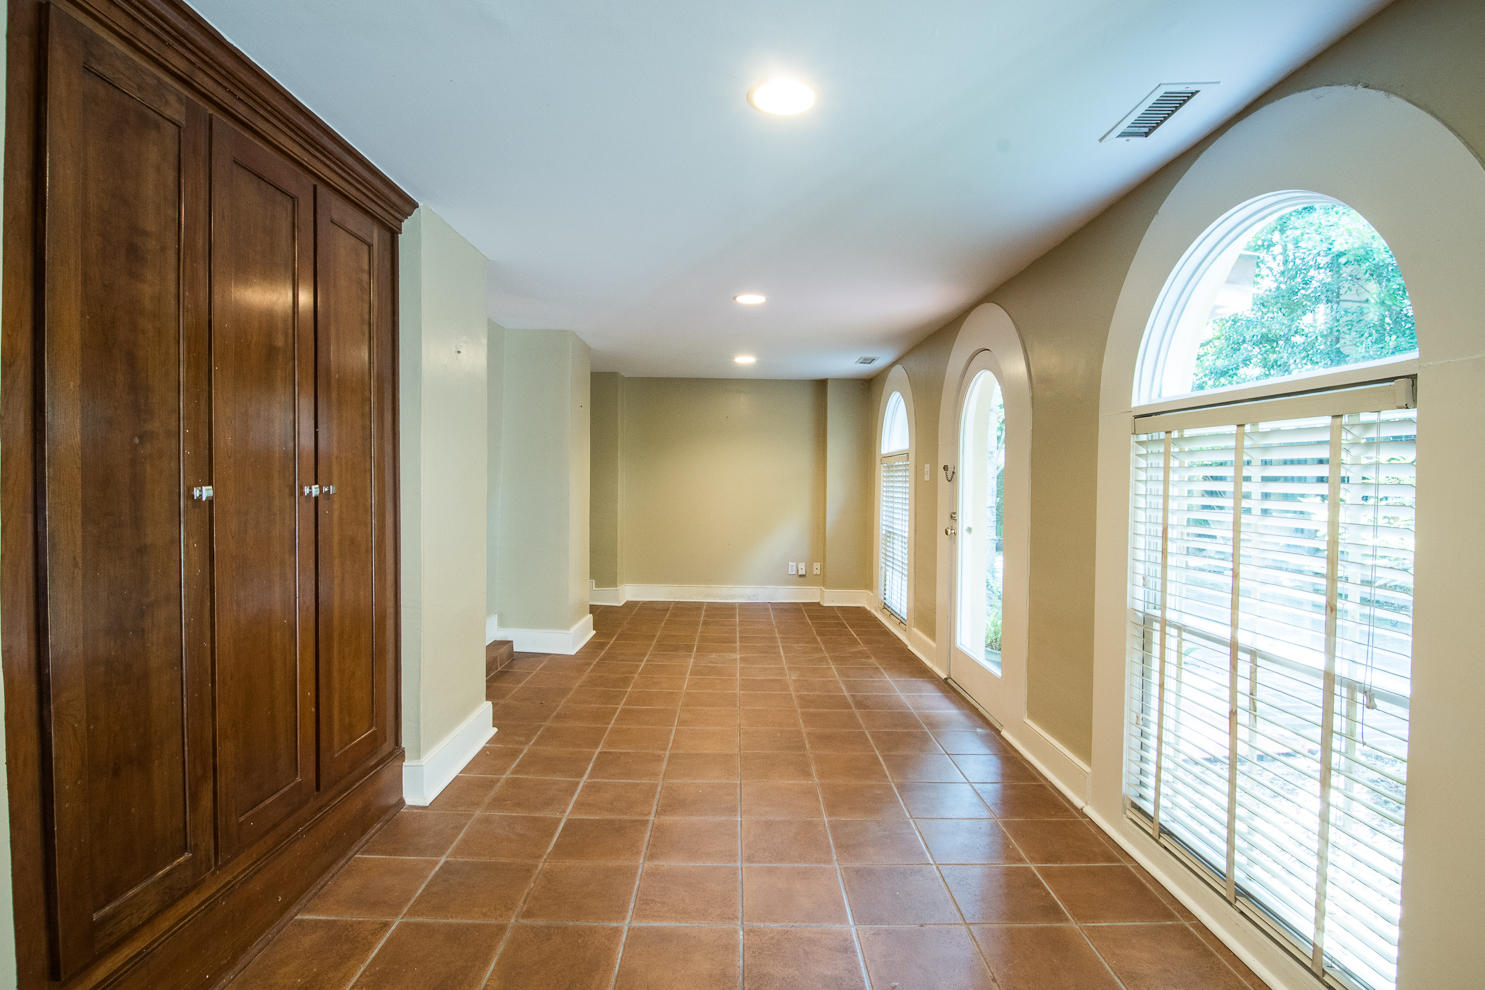 South of Broad Homes For Sale - 1 Prices, Charleston, SC - 53